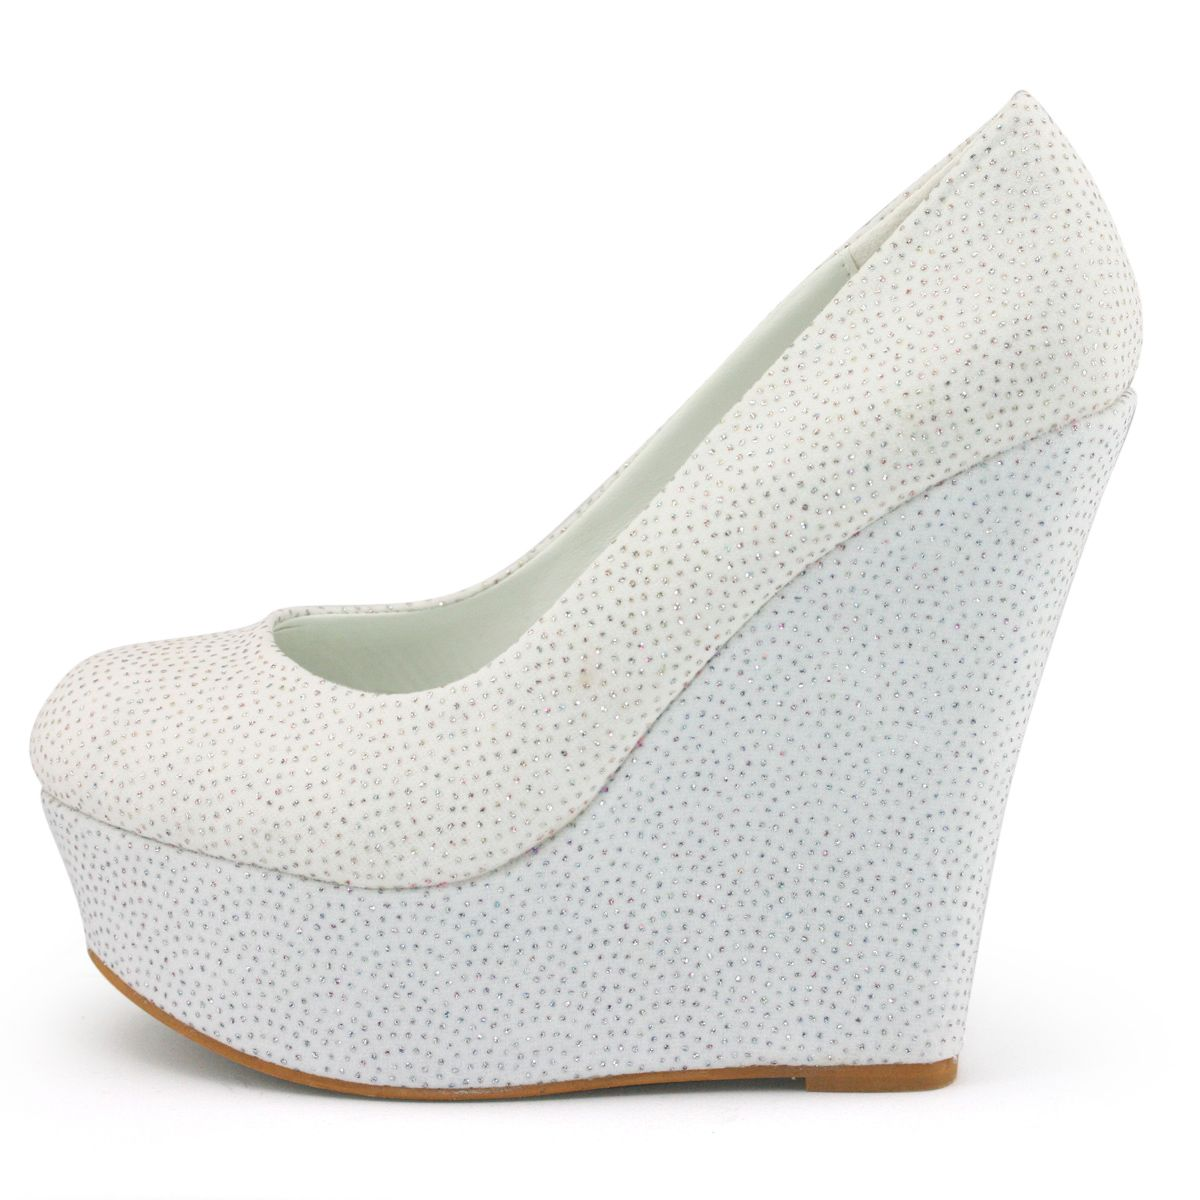 white platform wedding wedges | SHOEZY womens black white glitter ...